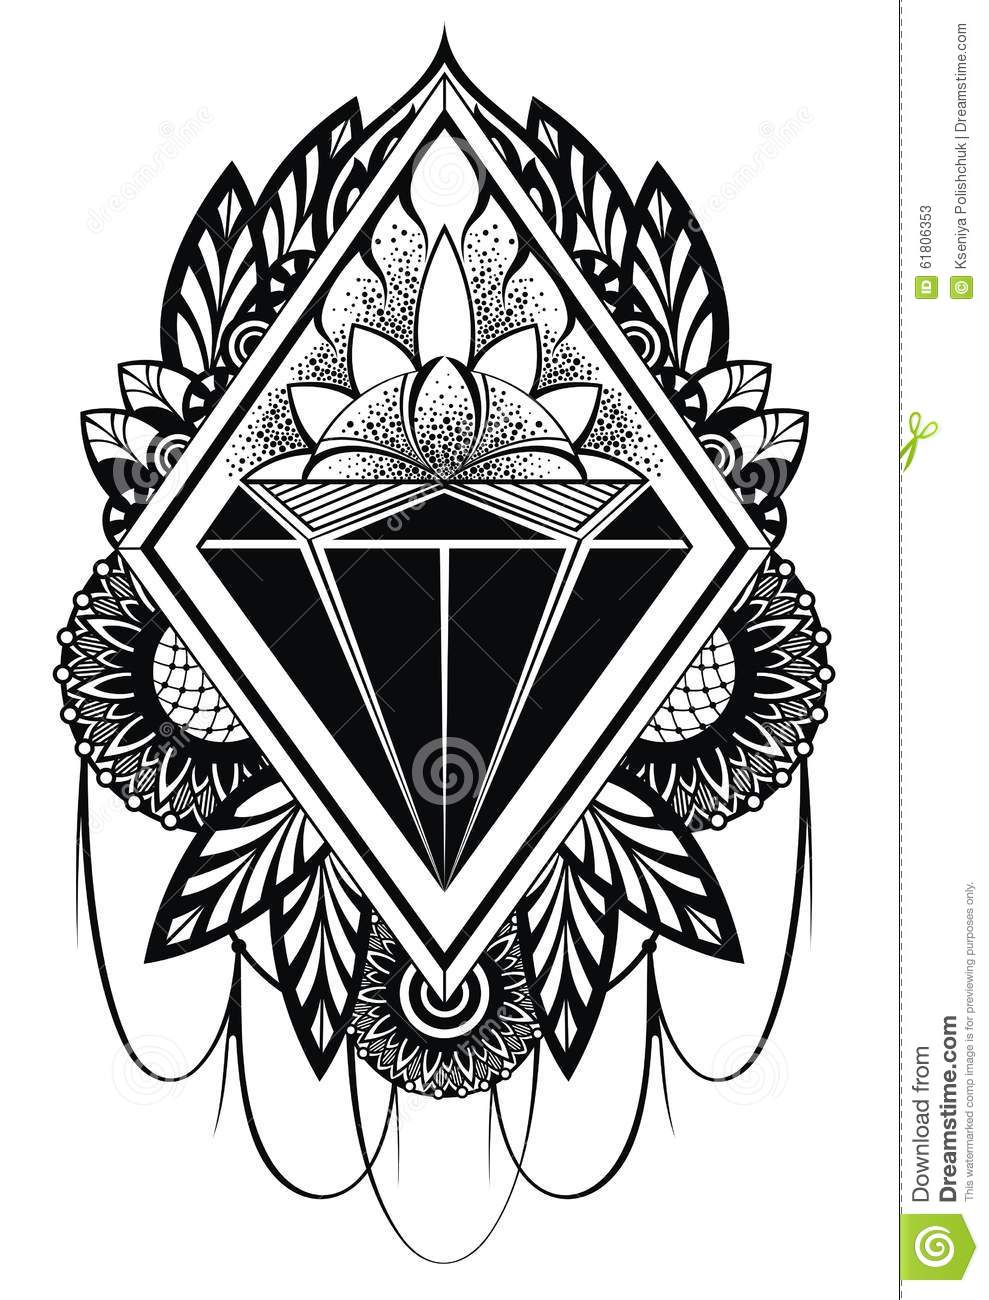 Diamond Tattoo Stock Vector Image 61806353